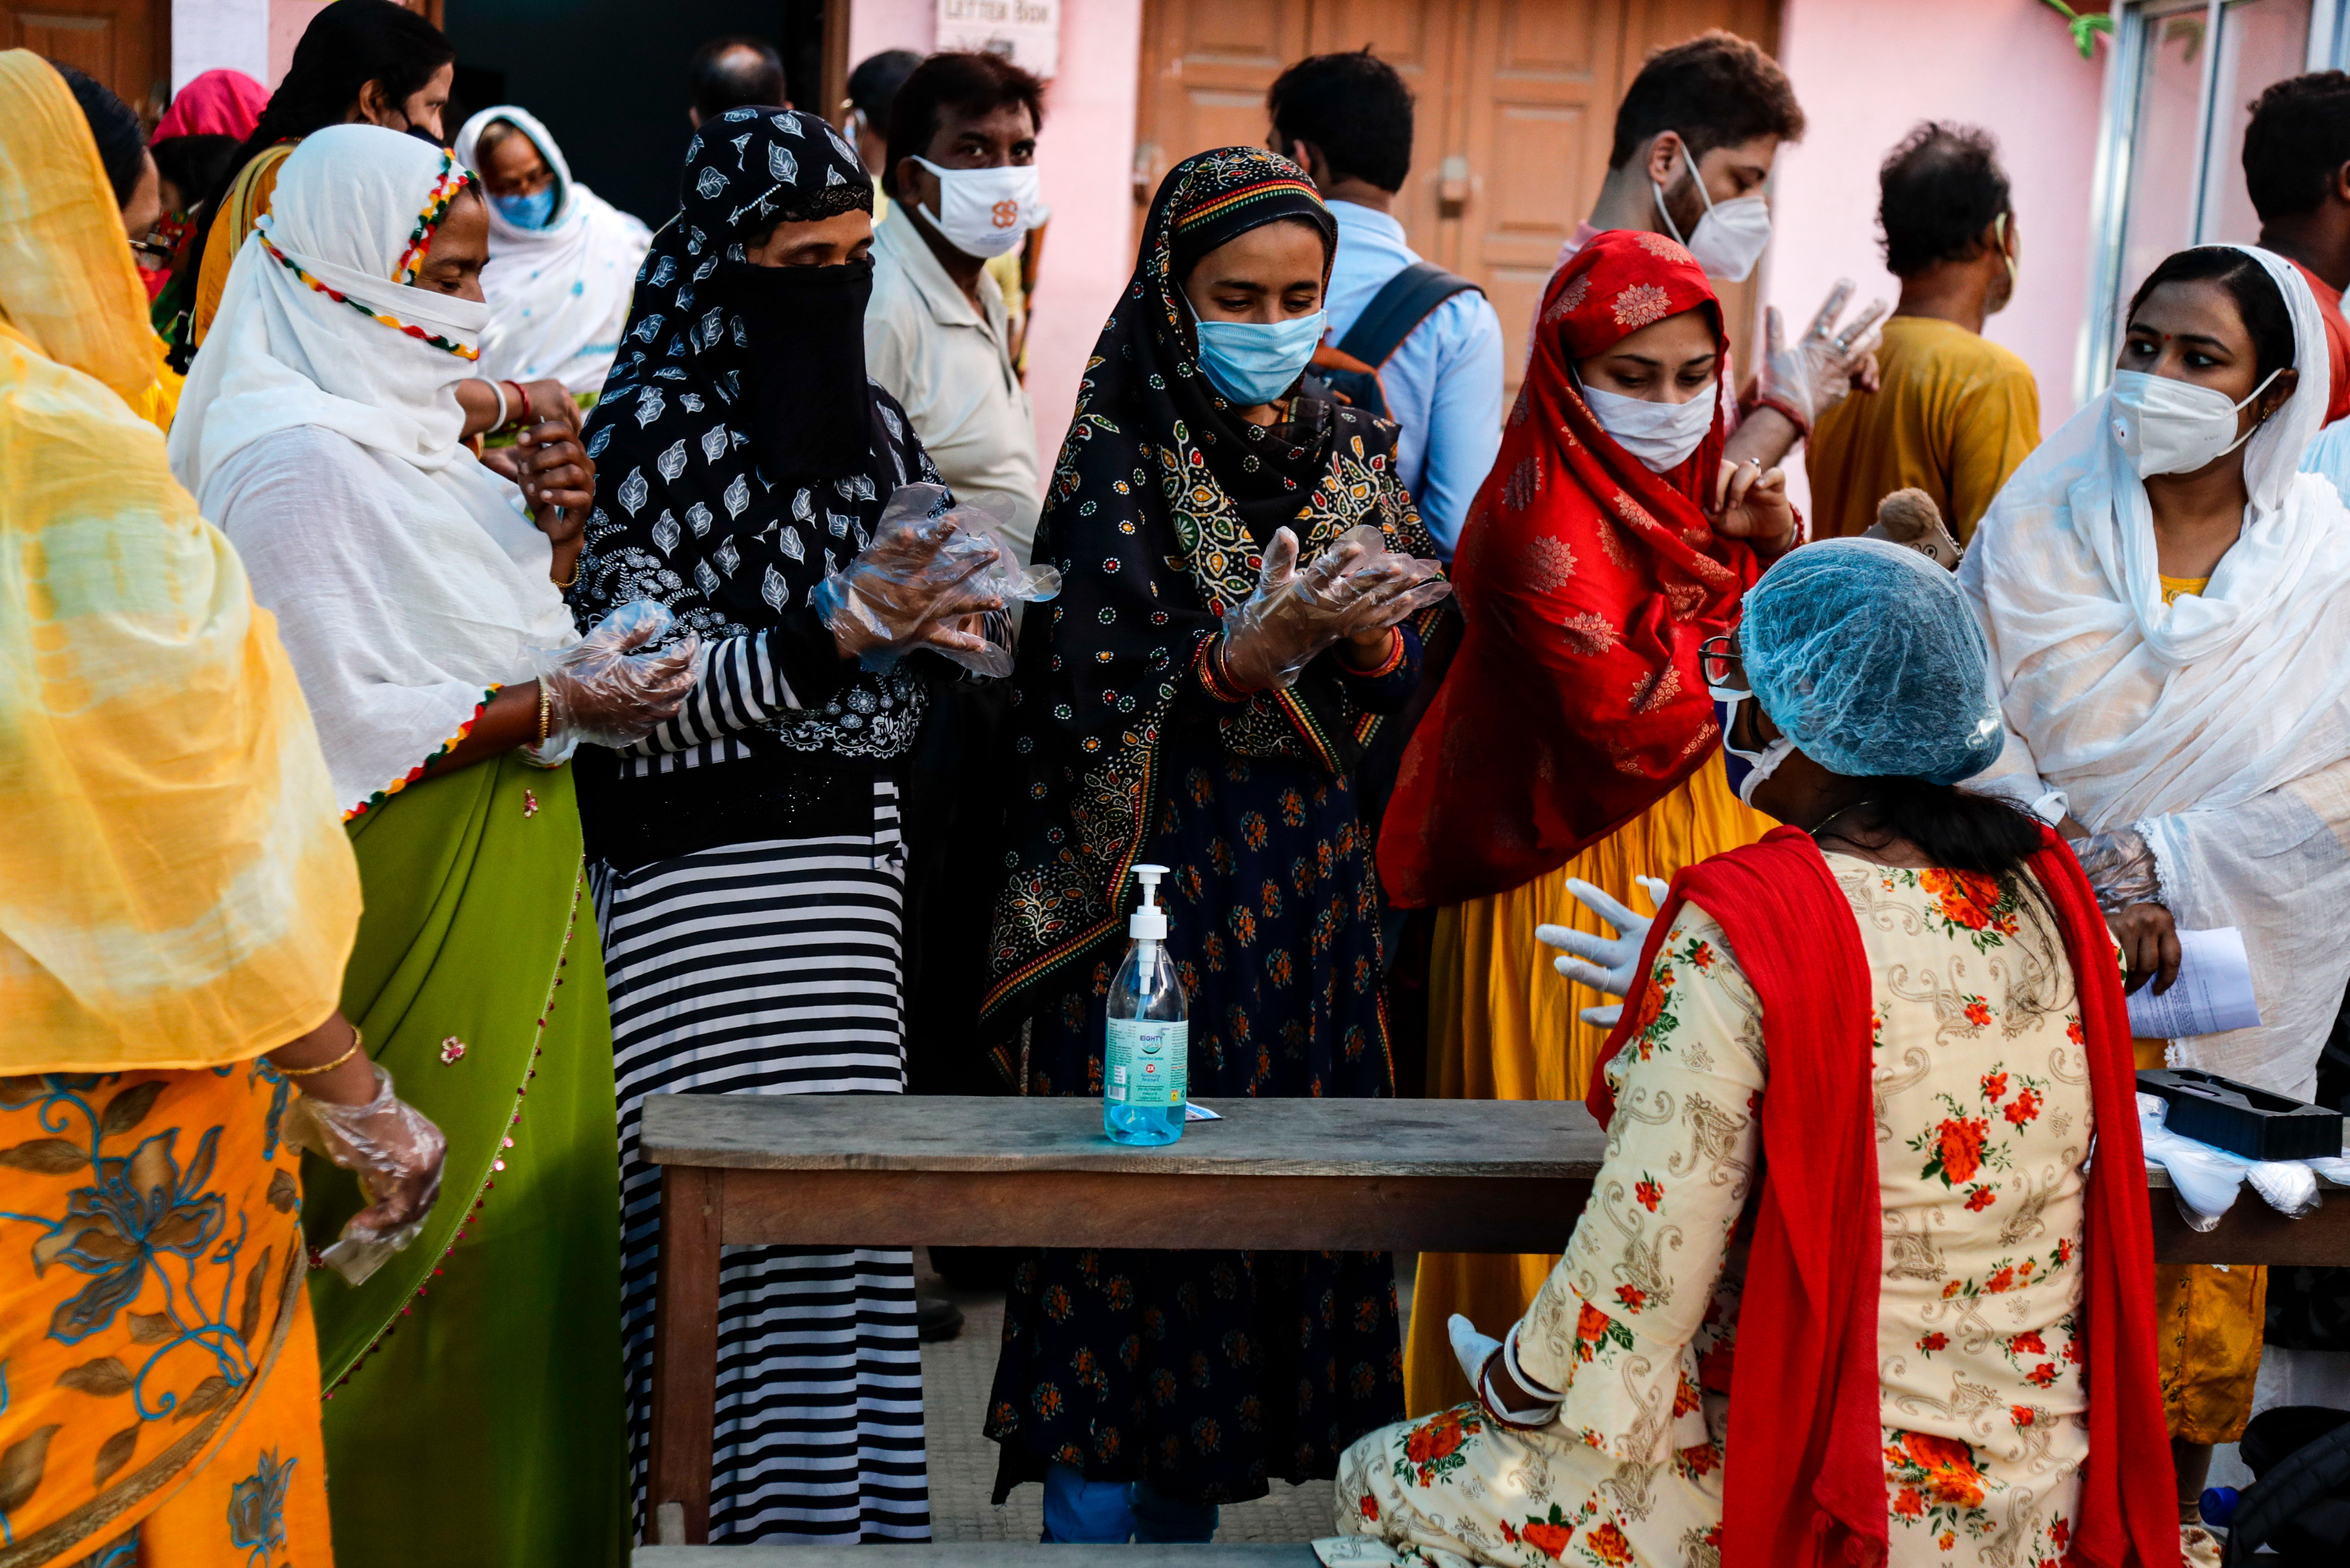 People wear gloves before casting their votes at a polling station during West Bengal state elections in New Town, North 24 Parganas district, India, on April 17.